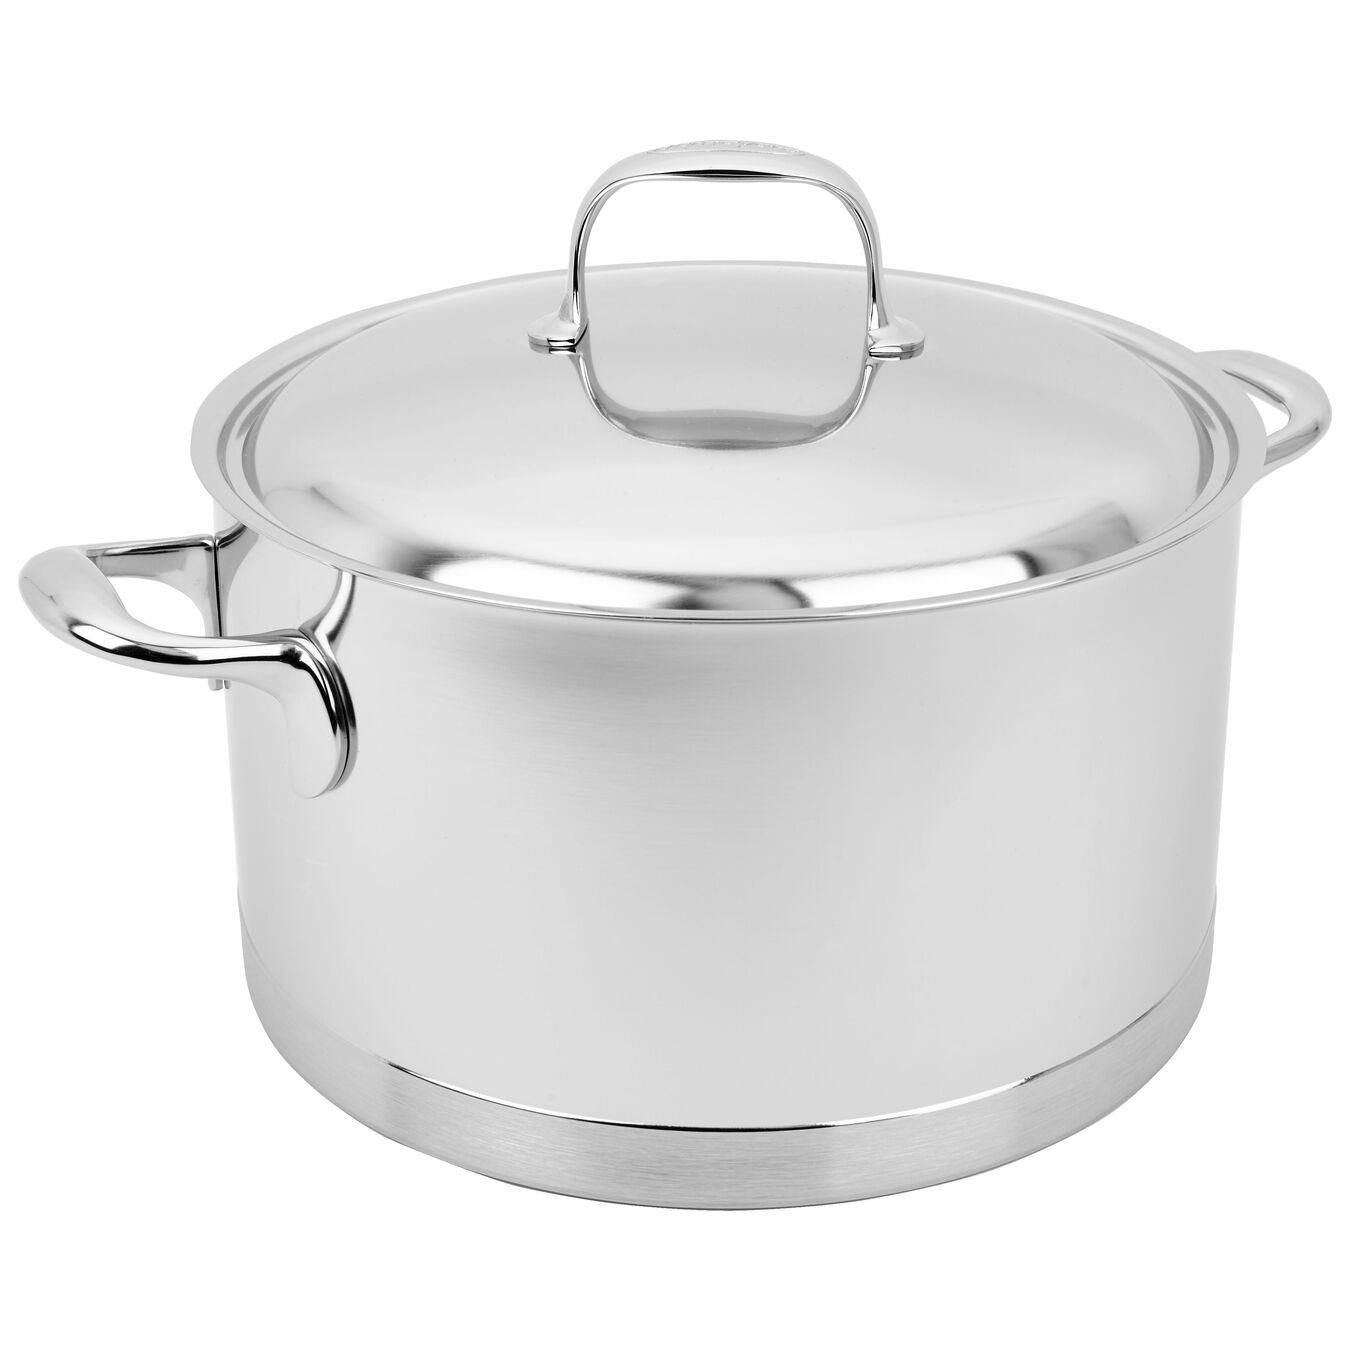 8.9-qt Stainless Steel Dutch Oven,,large 2